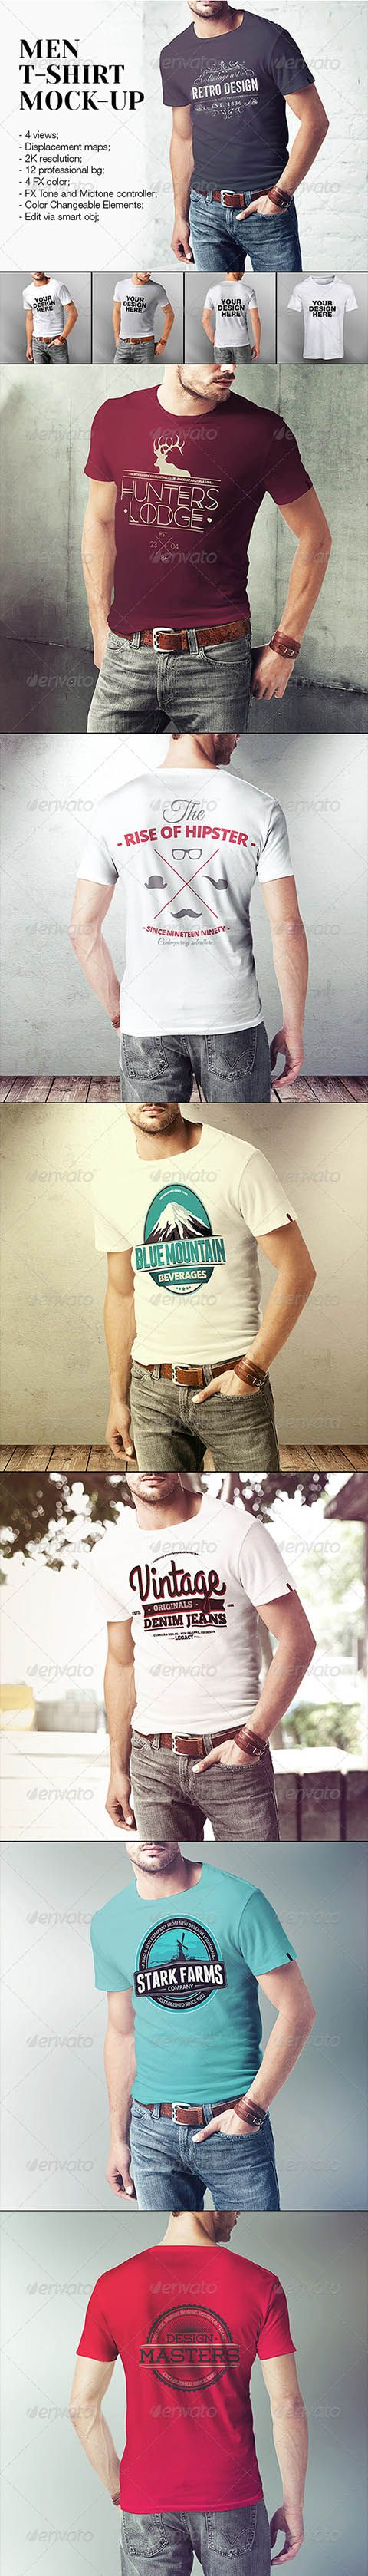 Men T-Shirt Mock-Up 7876525 » Free Special GFX Posts Vectors AEP Projects PSD Web Templates